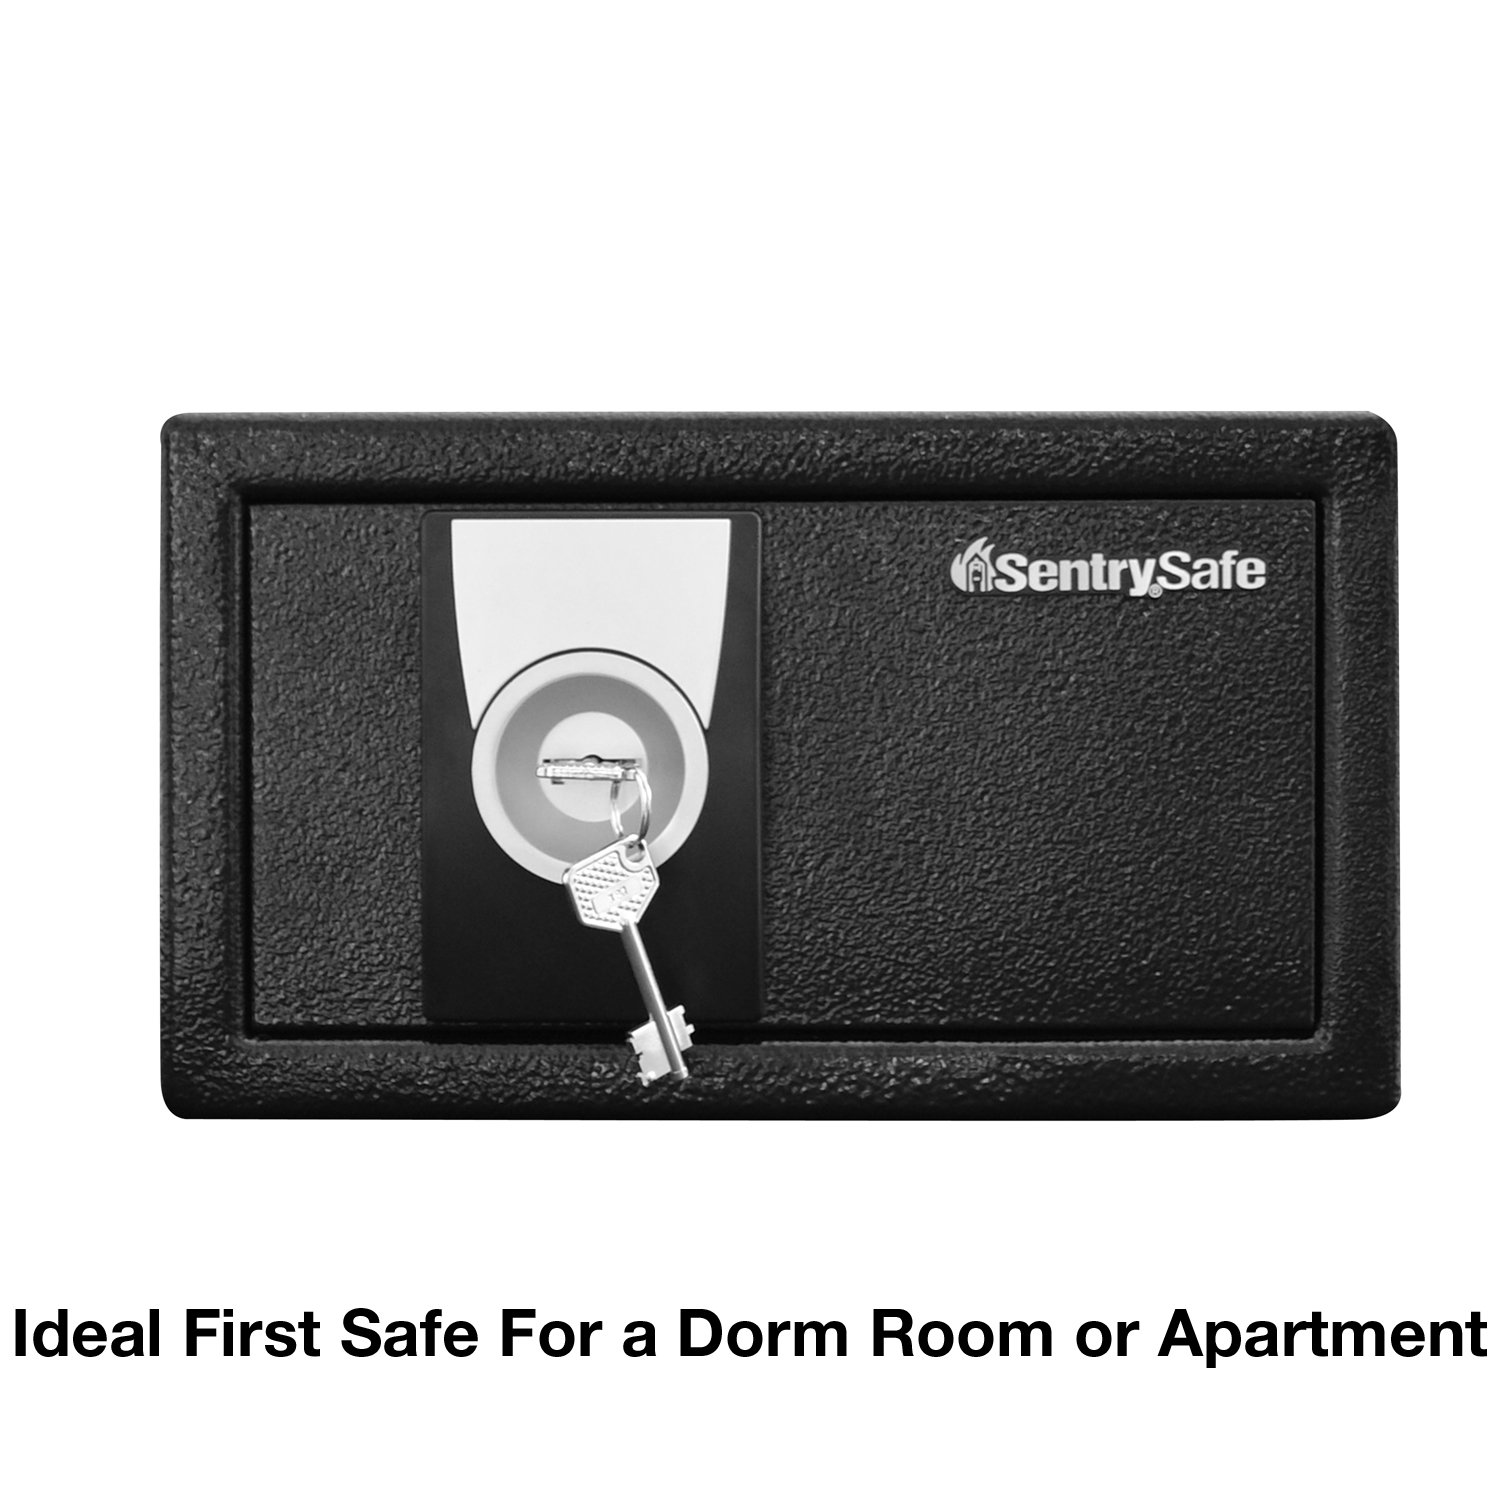 sentrysafe com combination with ip safe lock fire for dorm room walmart